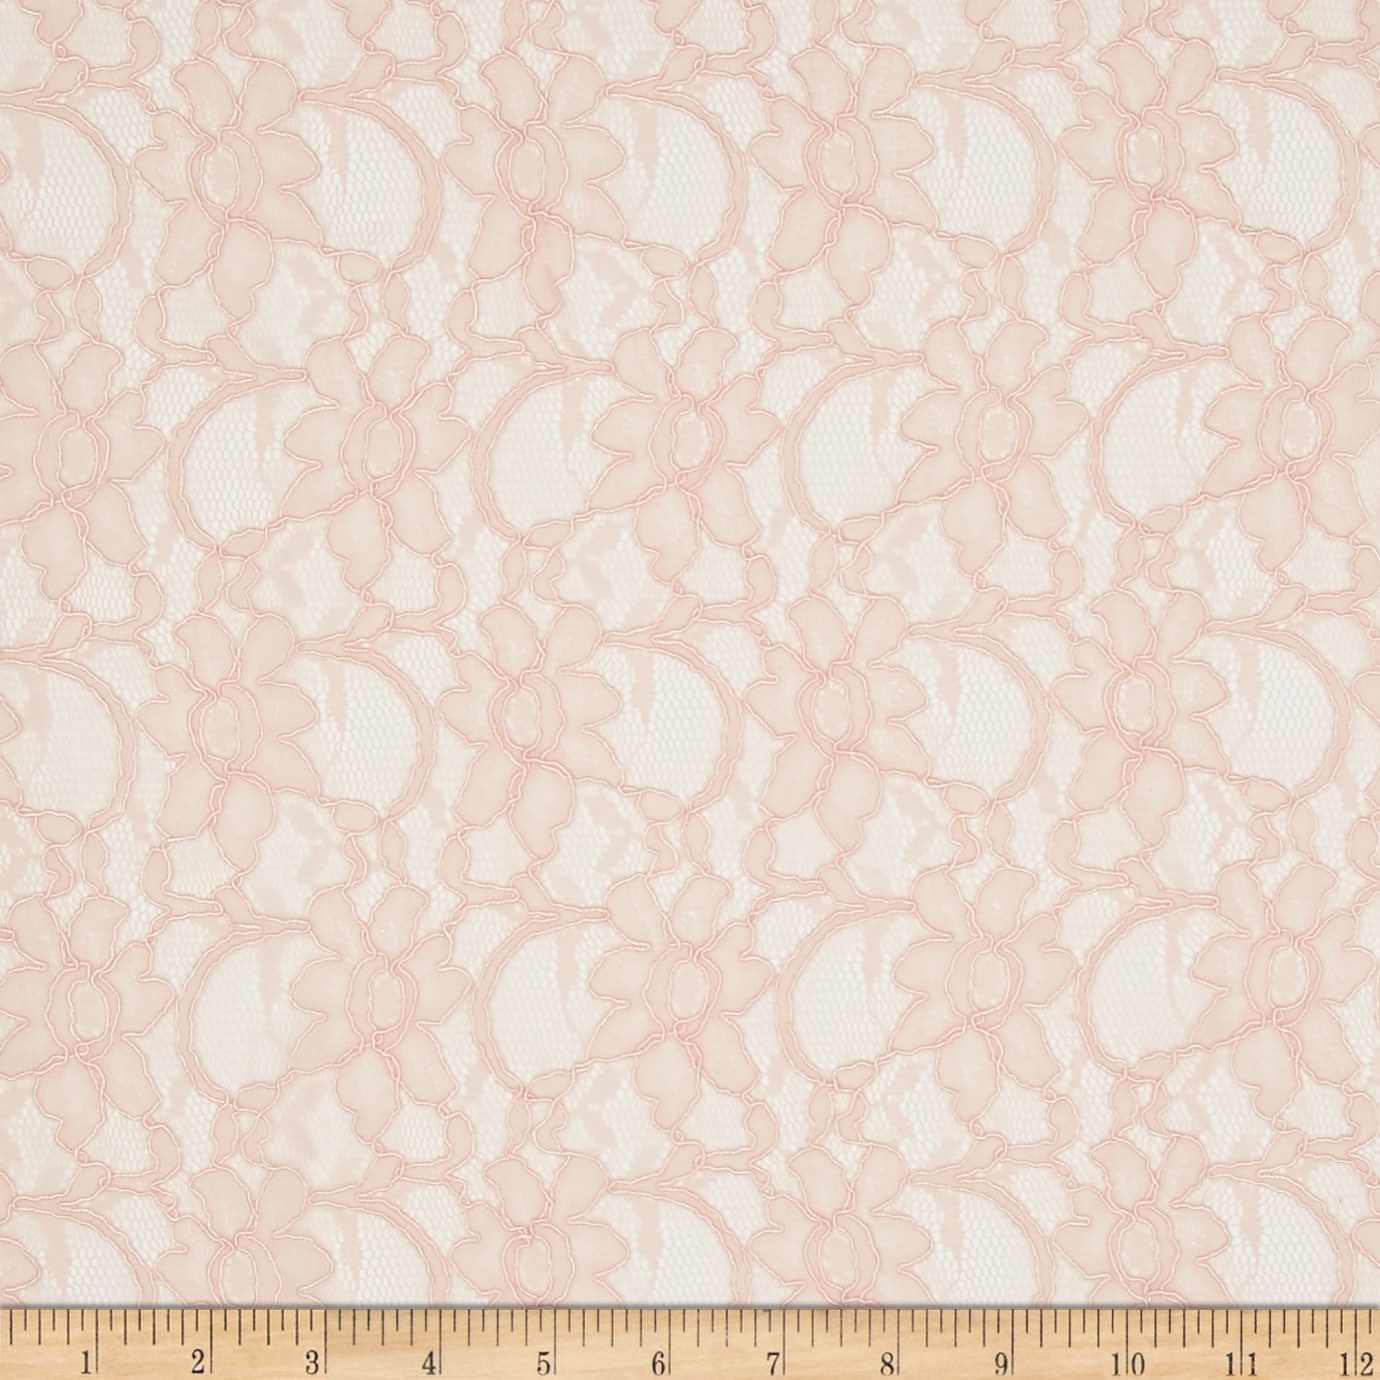 Xanna Floral Lace Light Pink Fabric